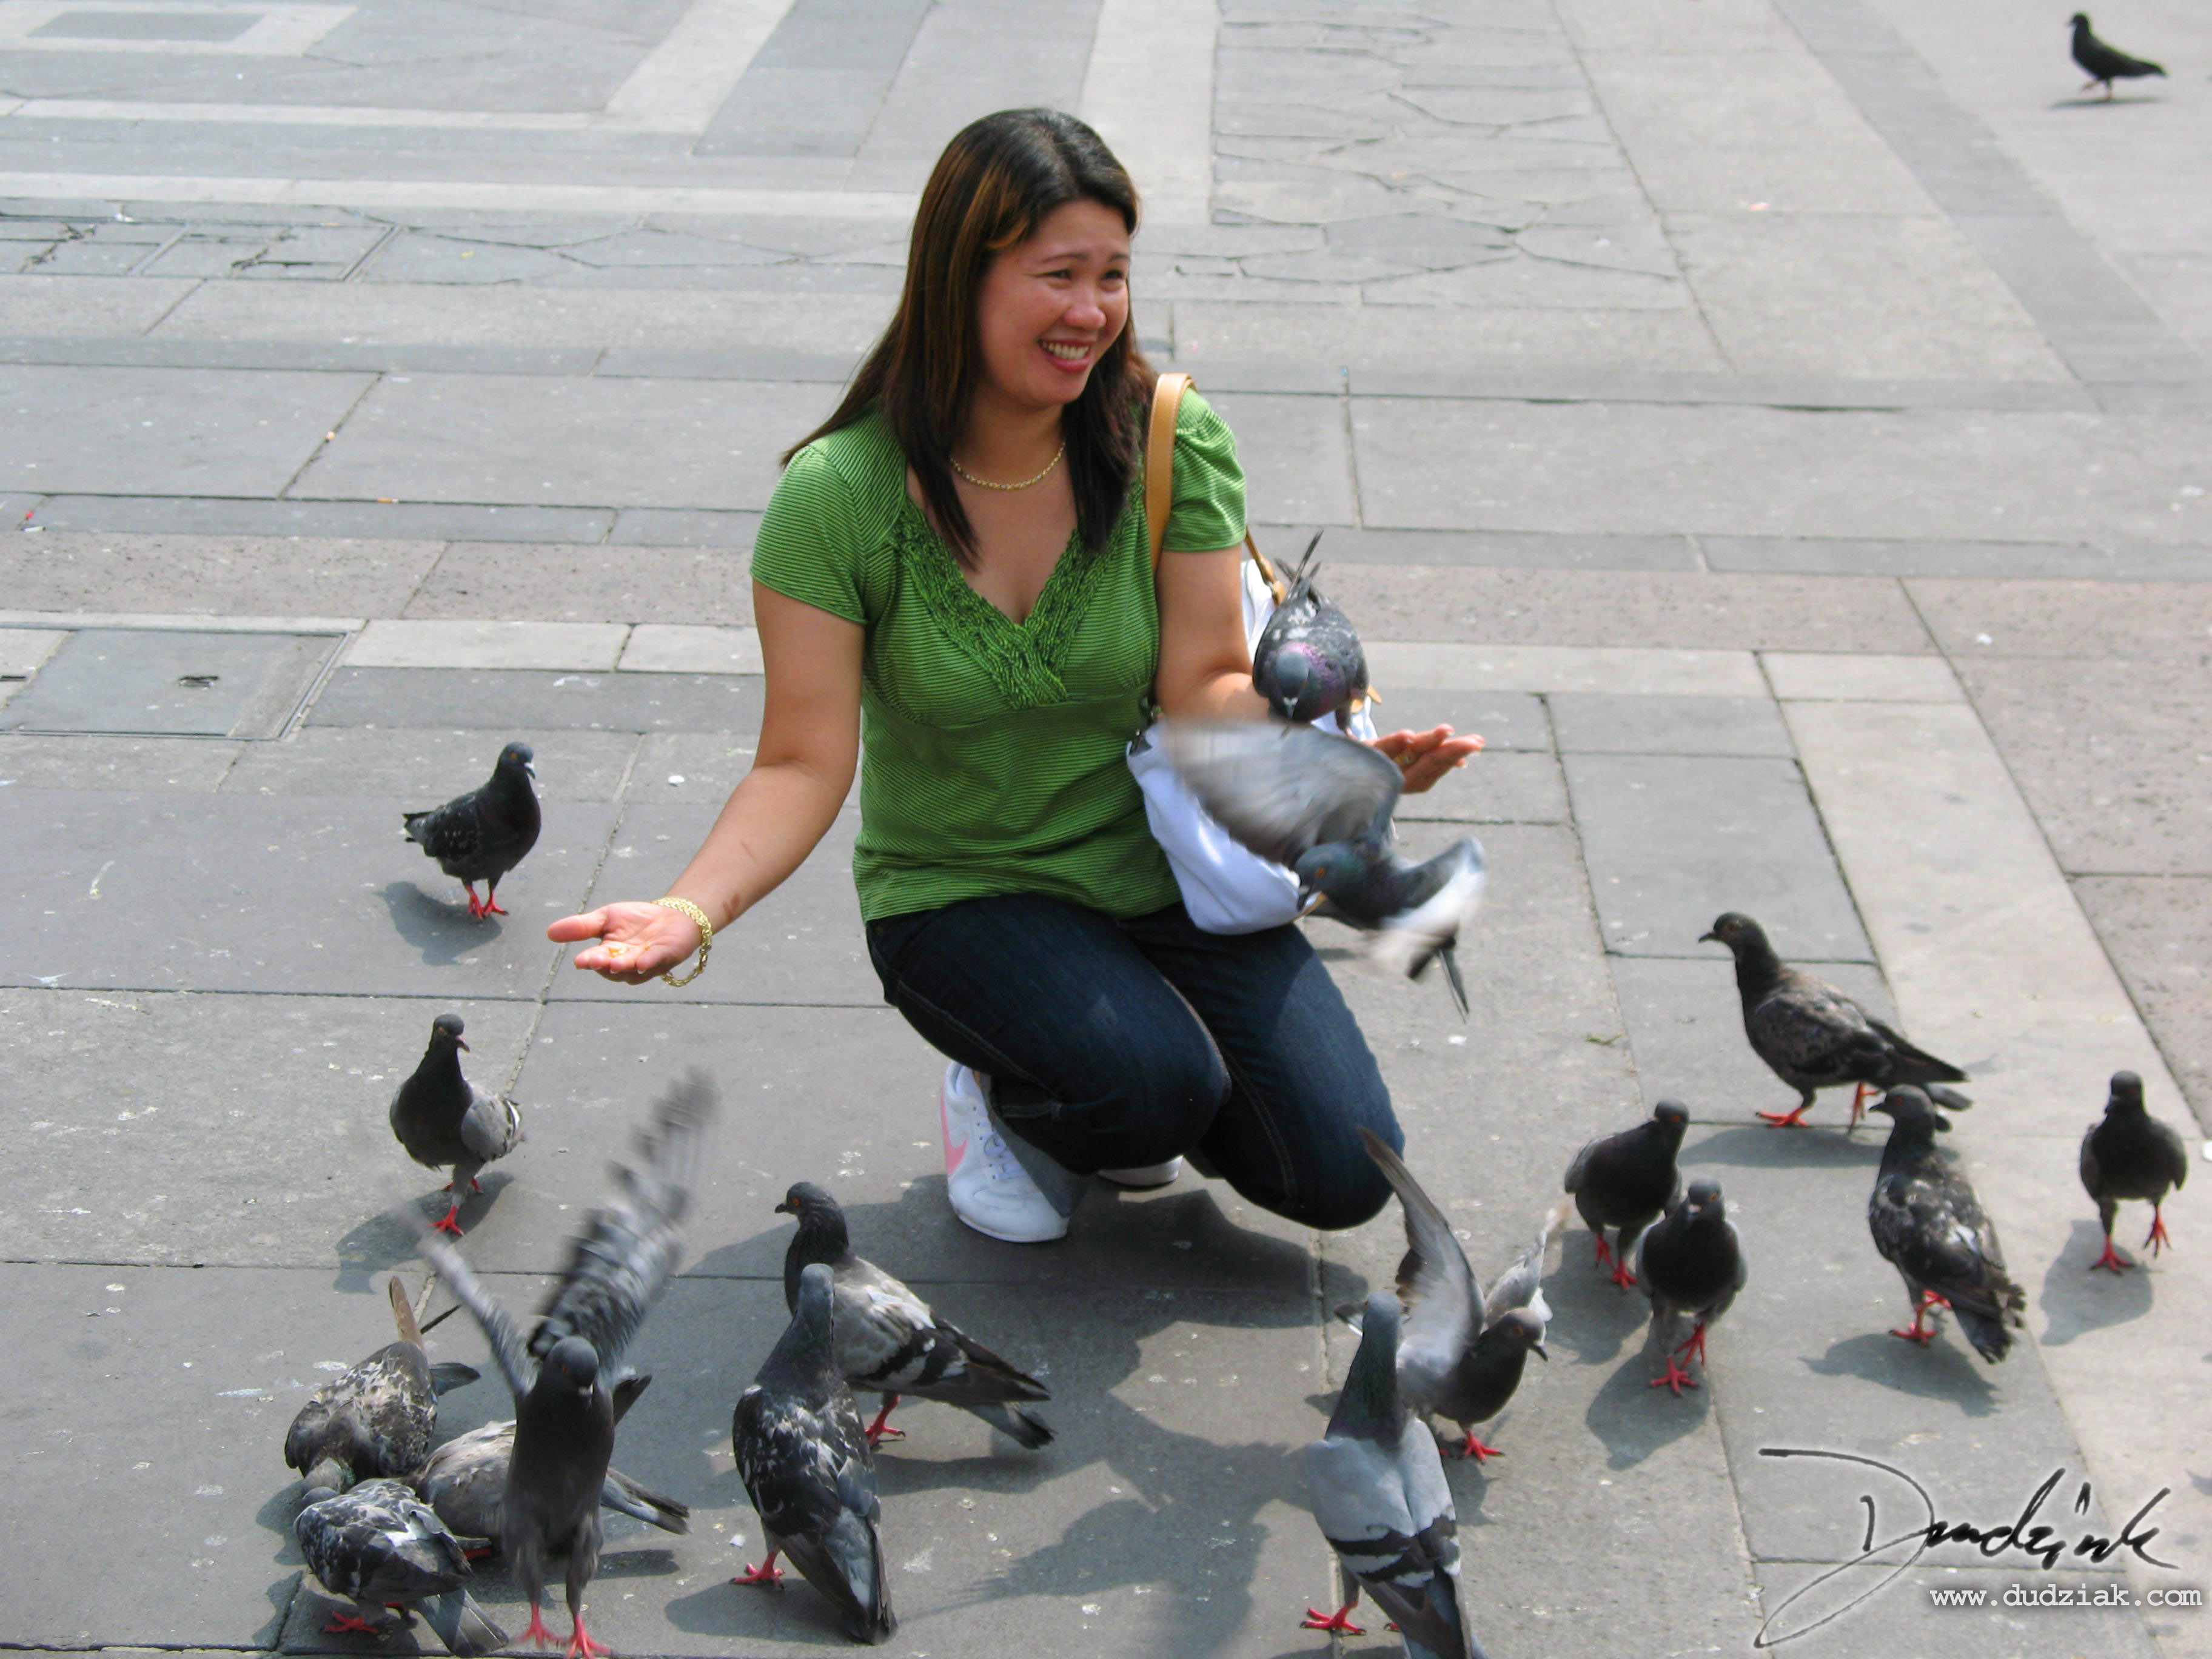 Feeding the pigeons in the Piazza del Duomo in Milan, Italy.